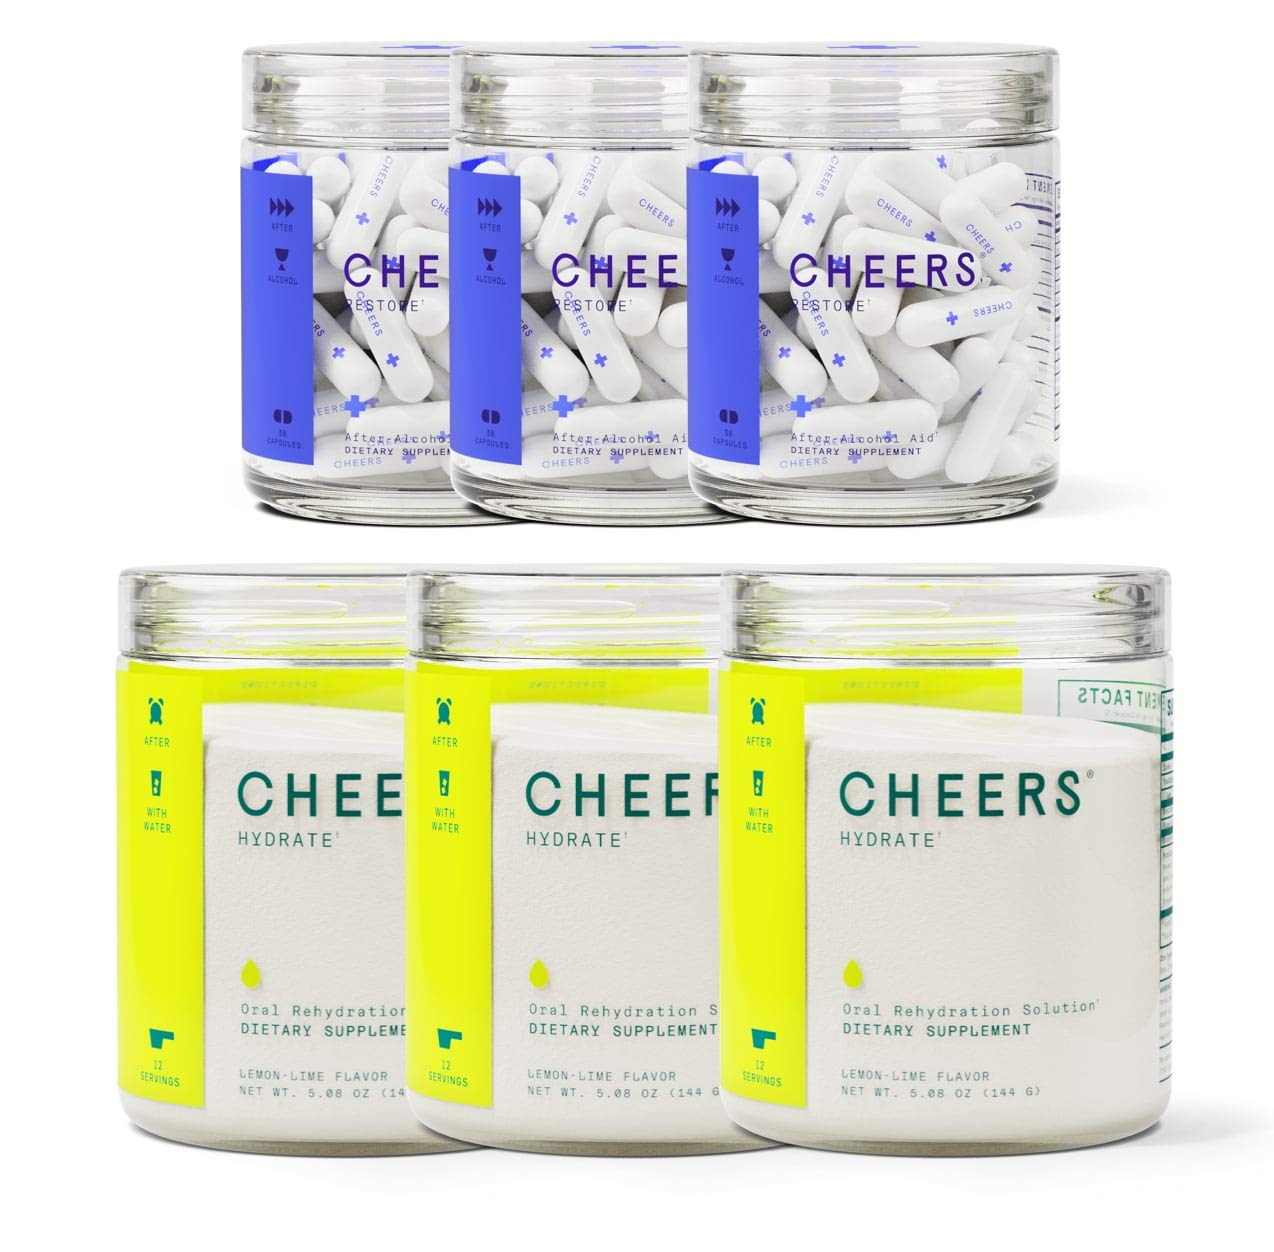 Cheers Formerly Thrive After Alcohol Aid ORS Combo for Fast Alcohol Detox Rehydration Recovery After Drinking Alcohol. Replenish with Our Electrolyte Formula Triple